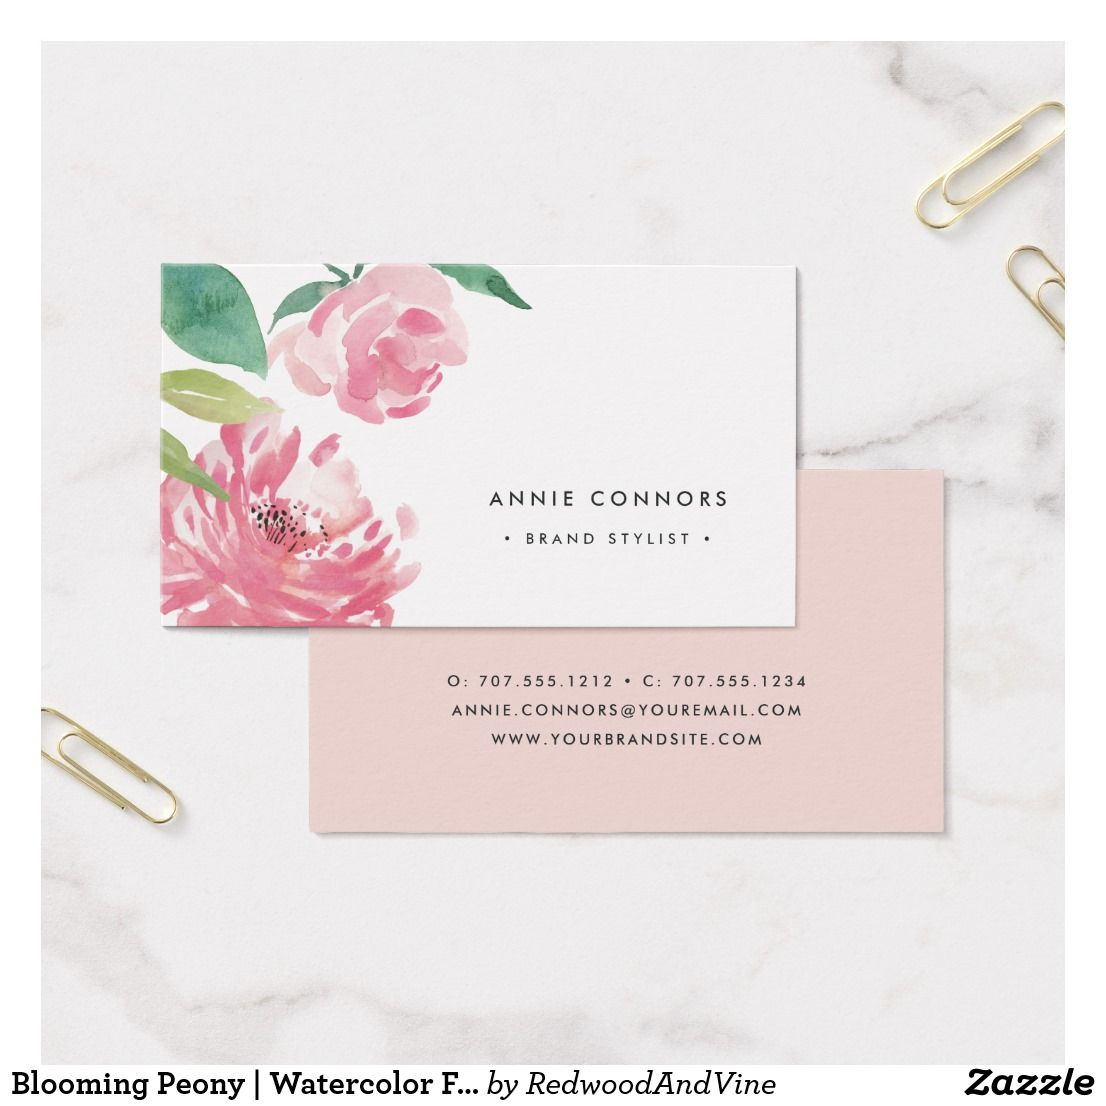 Blooming Peony Watercolor Floral Business Card Zazzle Com Blue Watercolor Floral Floral Watercolor Floral Business Cards